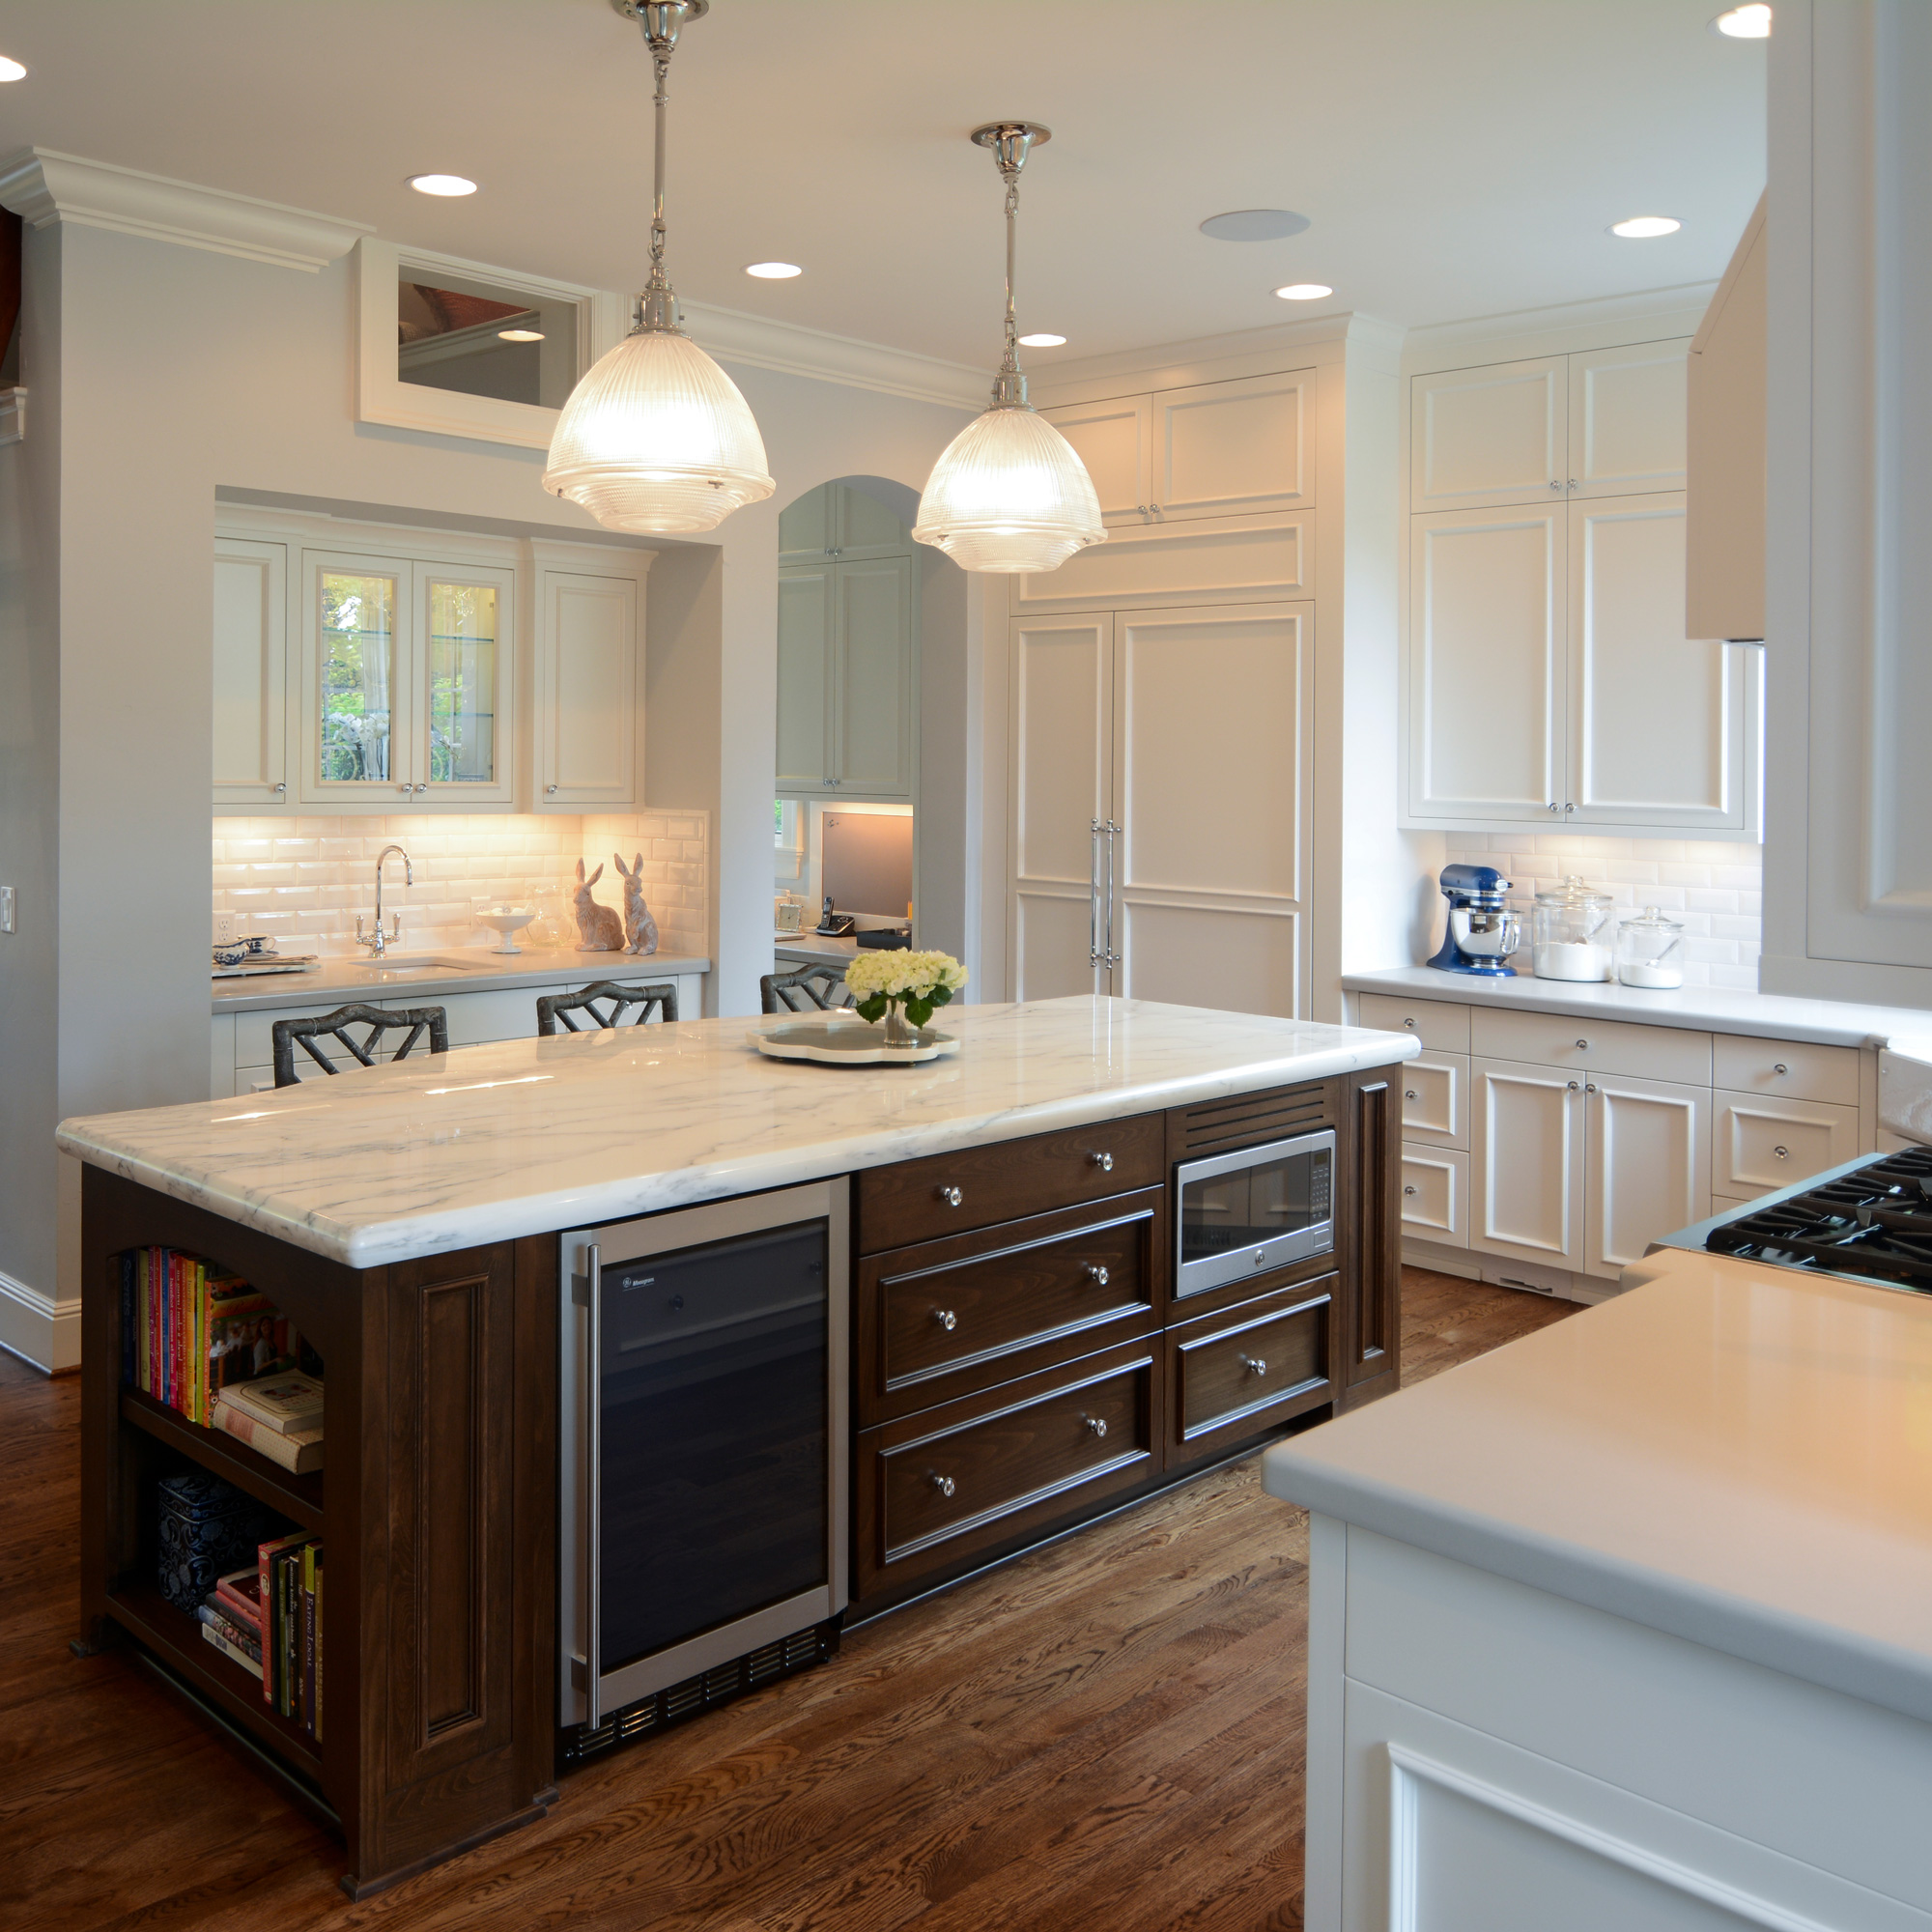 Kitchen Cabinets In Seattle: Kitchens And More Northwest